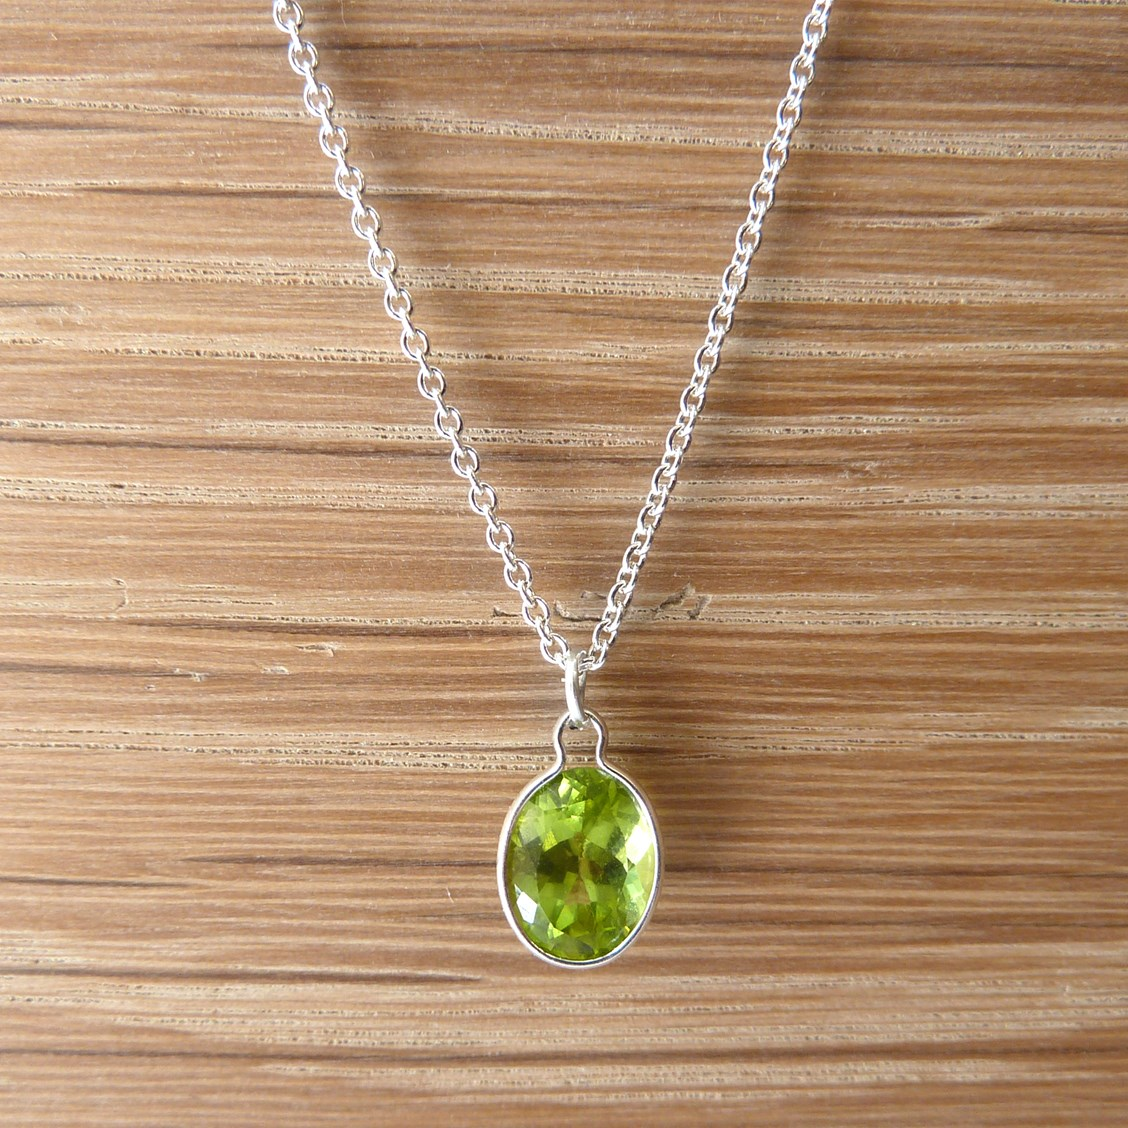 inch necklace peridot amp gold image pendant jewellery new